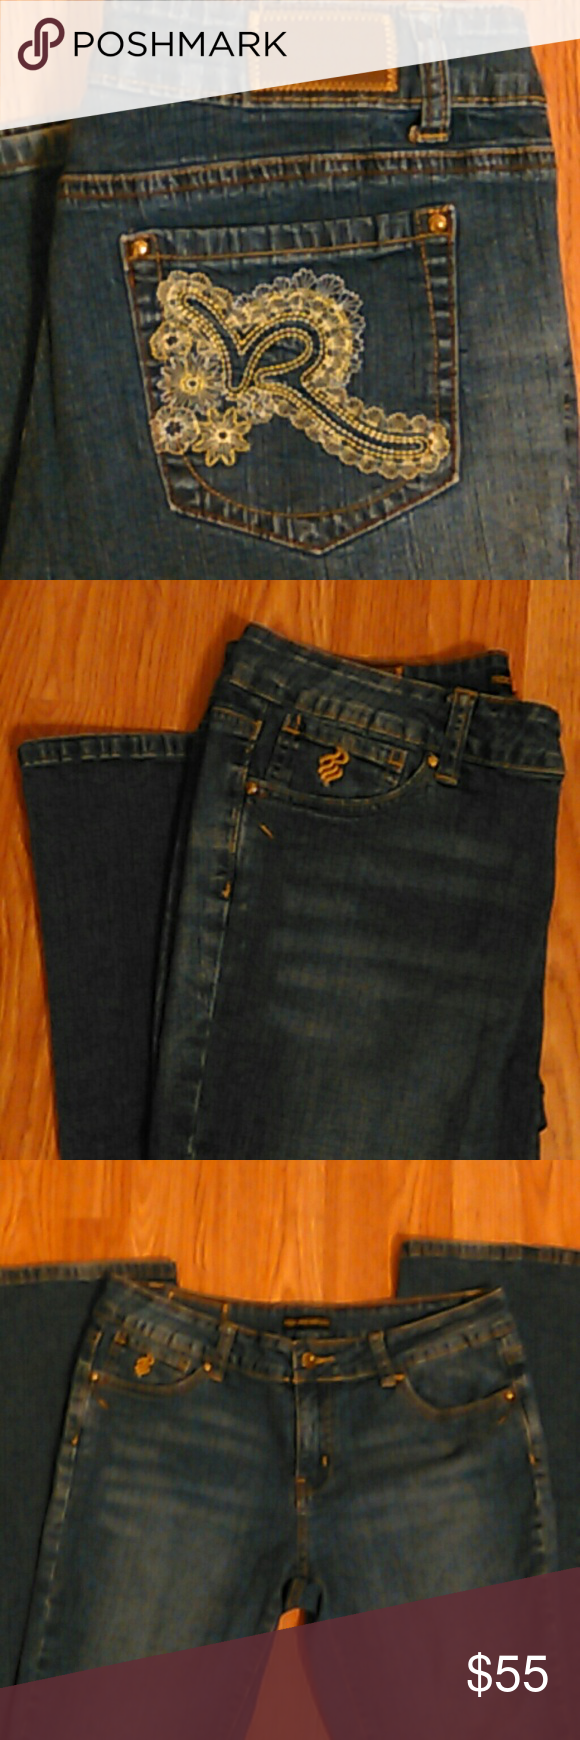 NEW Roca wear jeans size 11!! NEW rocawear brand jeans women size 11 (98%cotton 2%spandex)  Nice logo design on back pockets.  Really nice pair of jeans.  Measurements are 33 inches in length! Rocawear Jeans